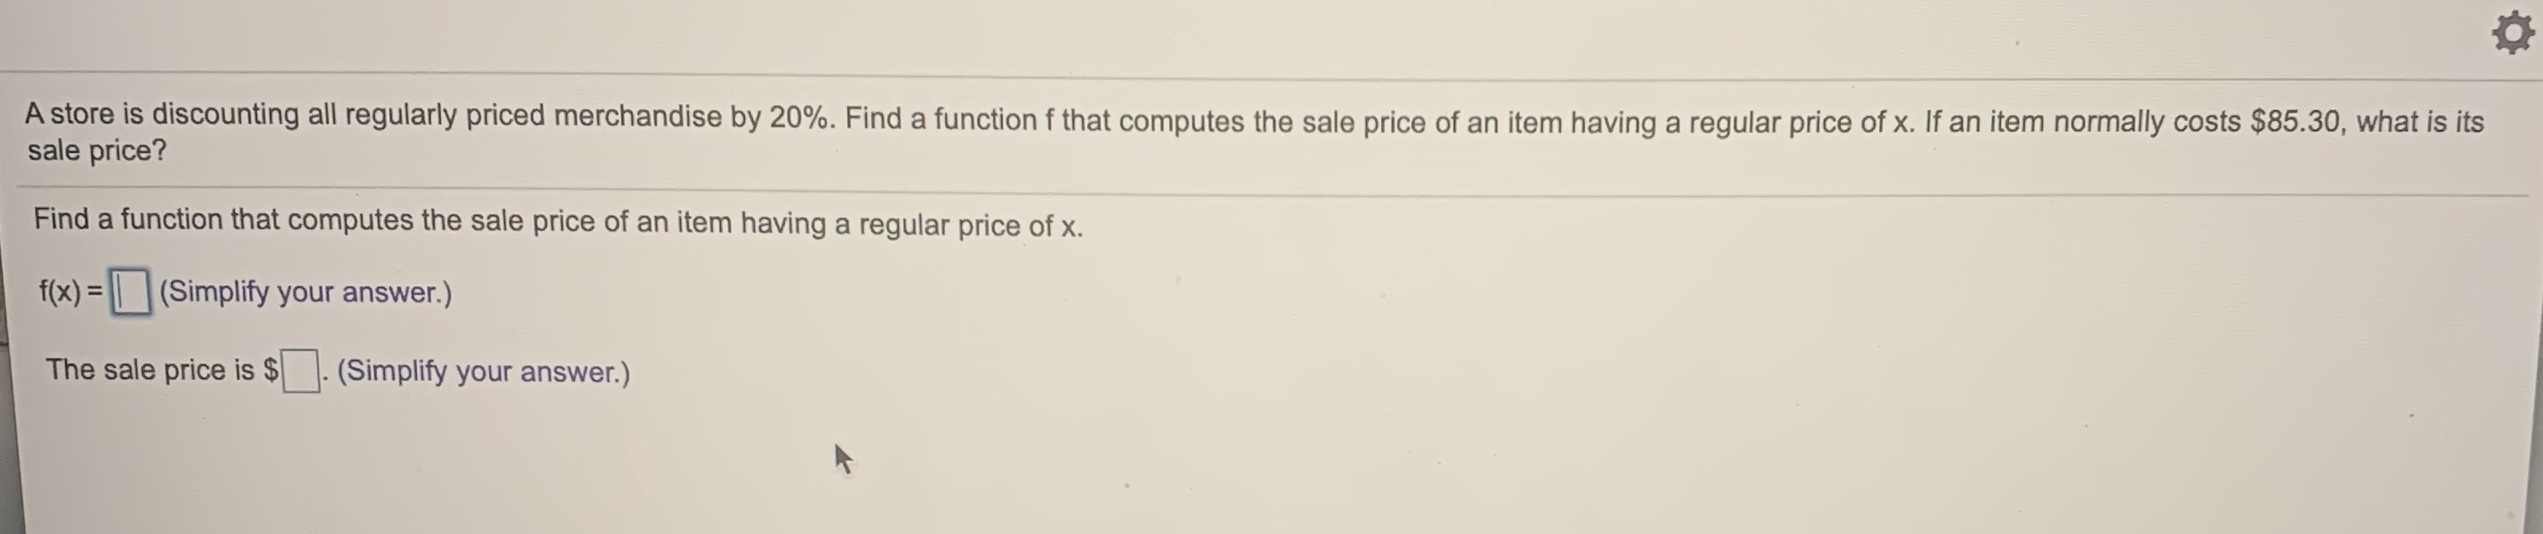 A store is discounting all regularly priced merchandise by 20%. Find a function f that computes the sale price of an item having a regular price of x. If an item normally costs $85.30, what is its sale price?